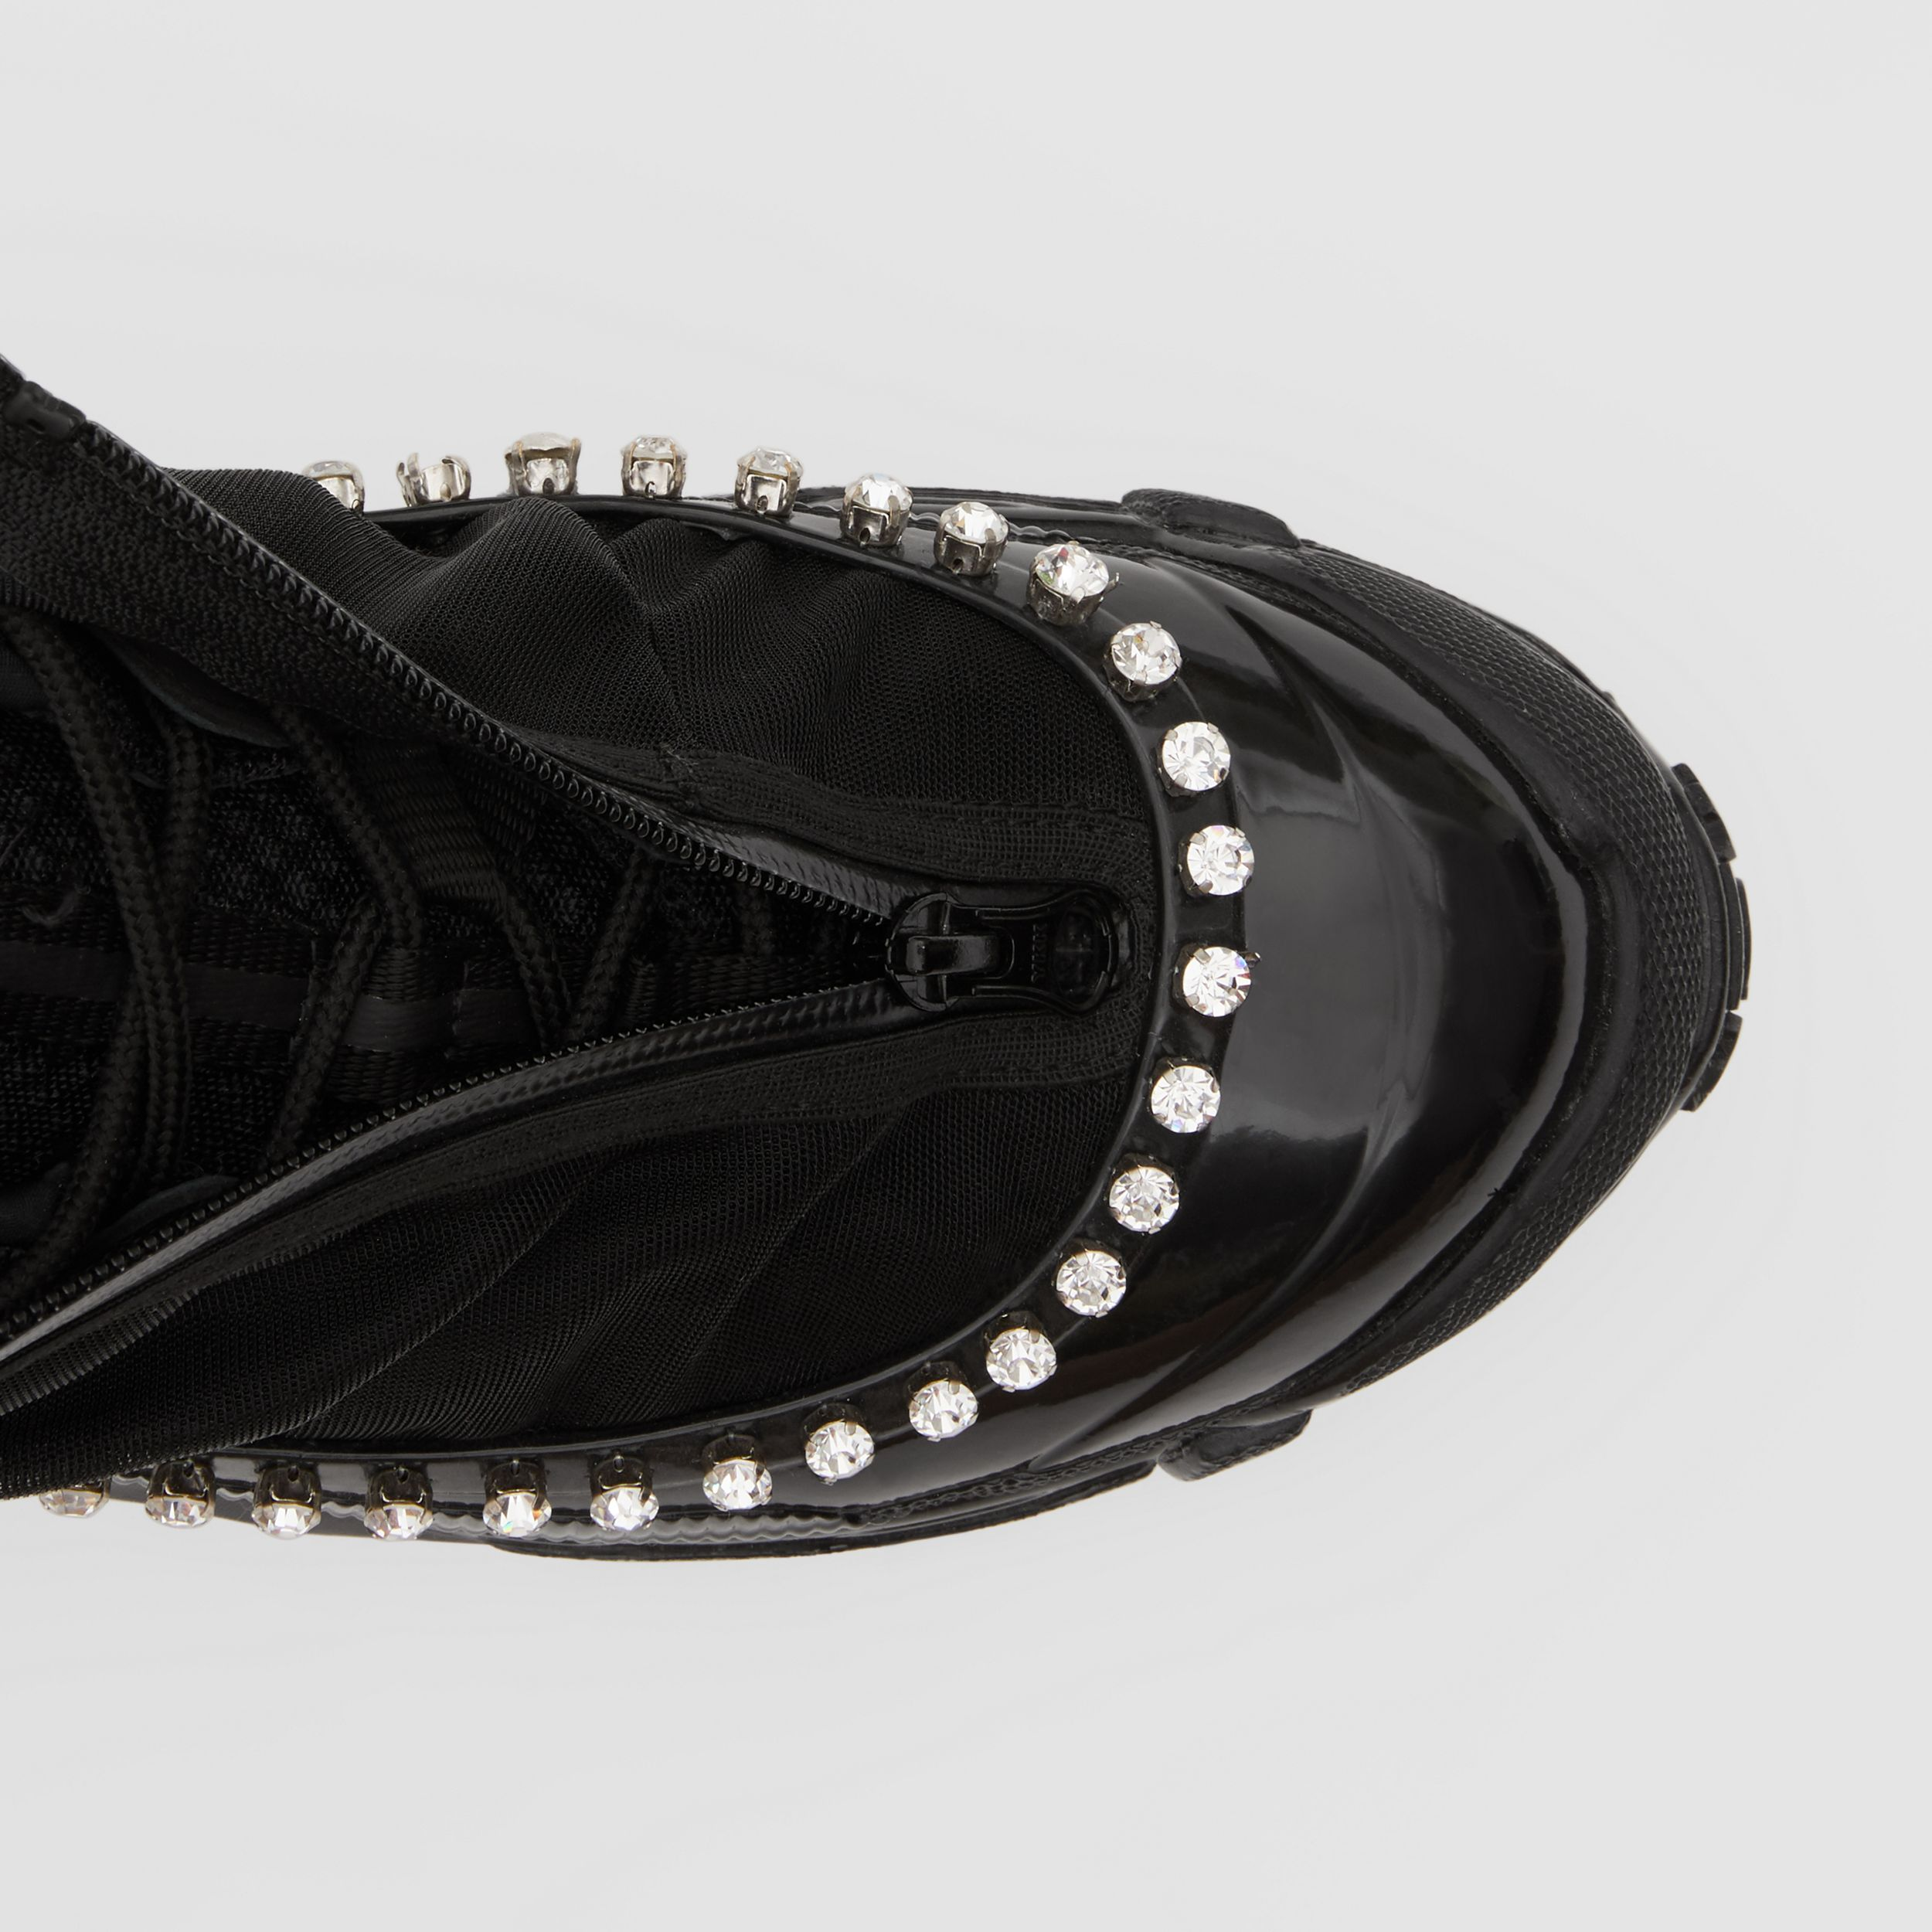 Crystal Detail Mesh, Nylon and Suede Arthur Sneakers in Black - Women | Burberry - 2